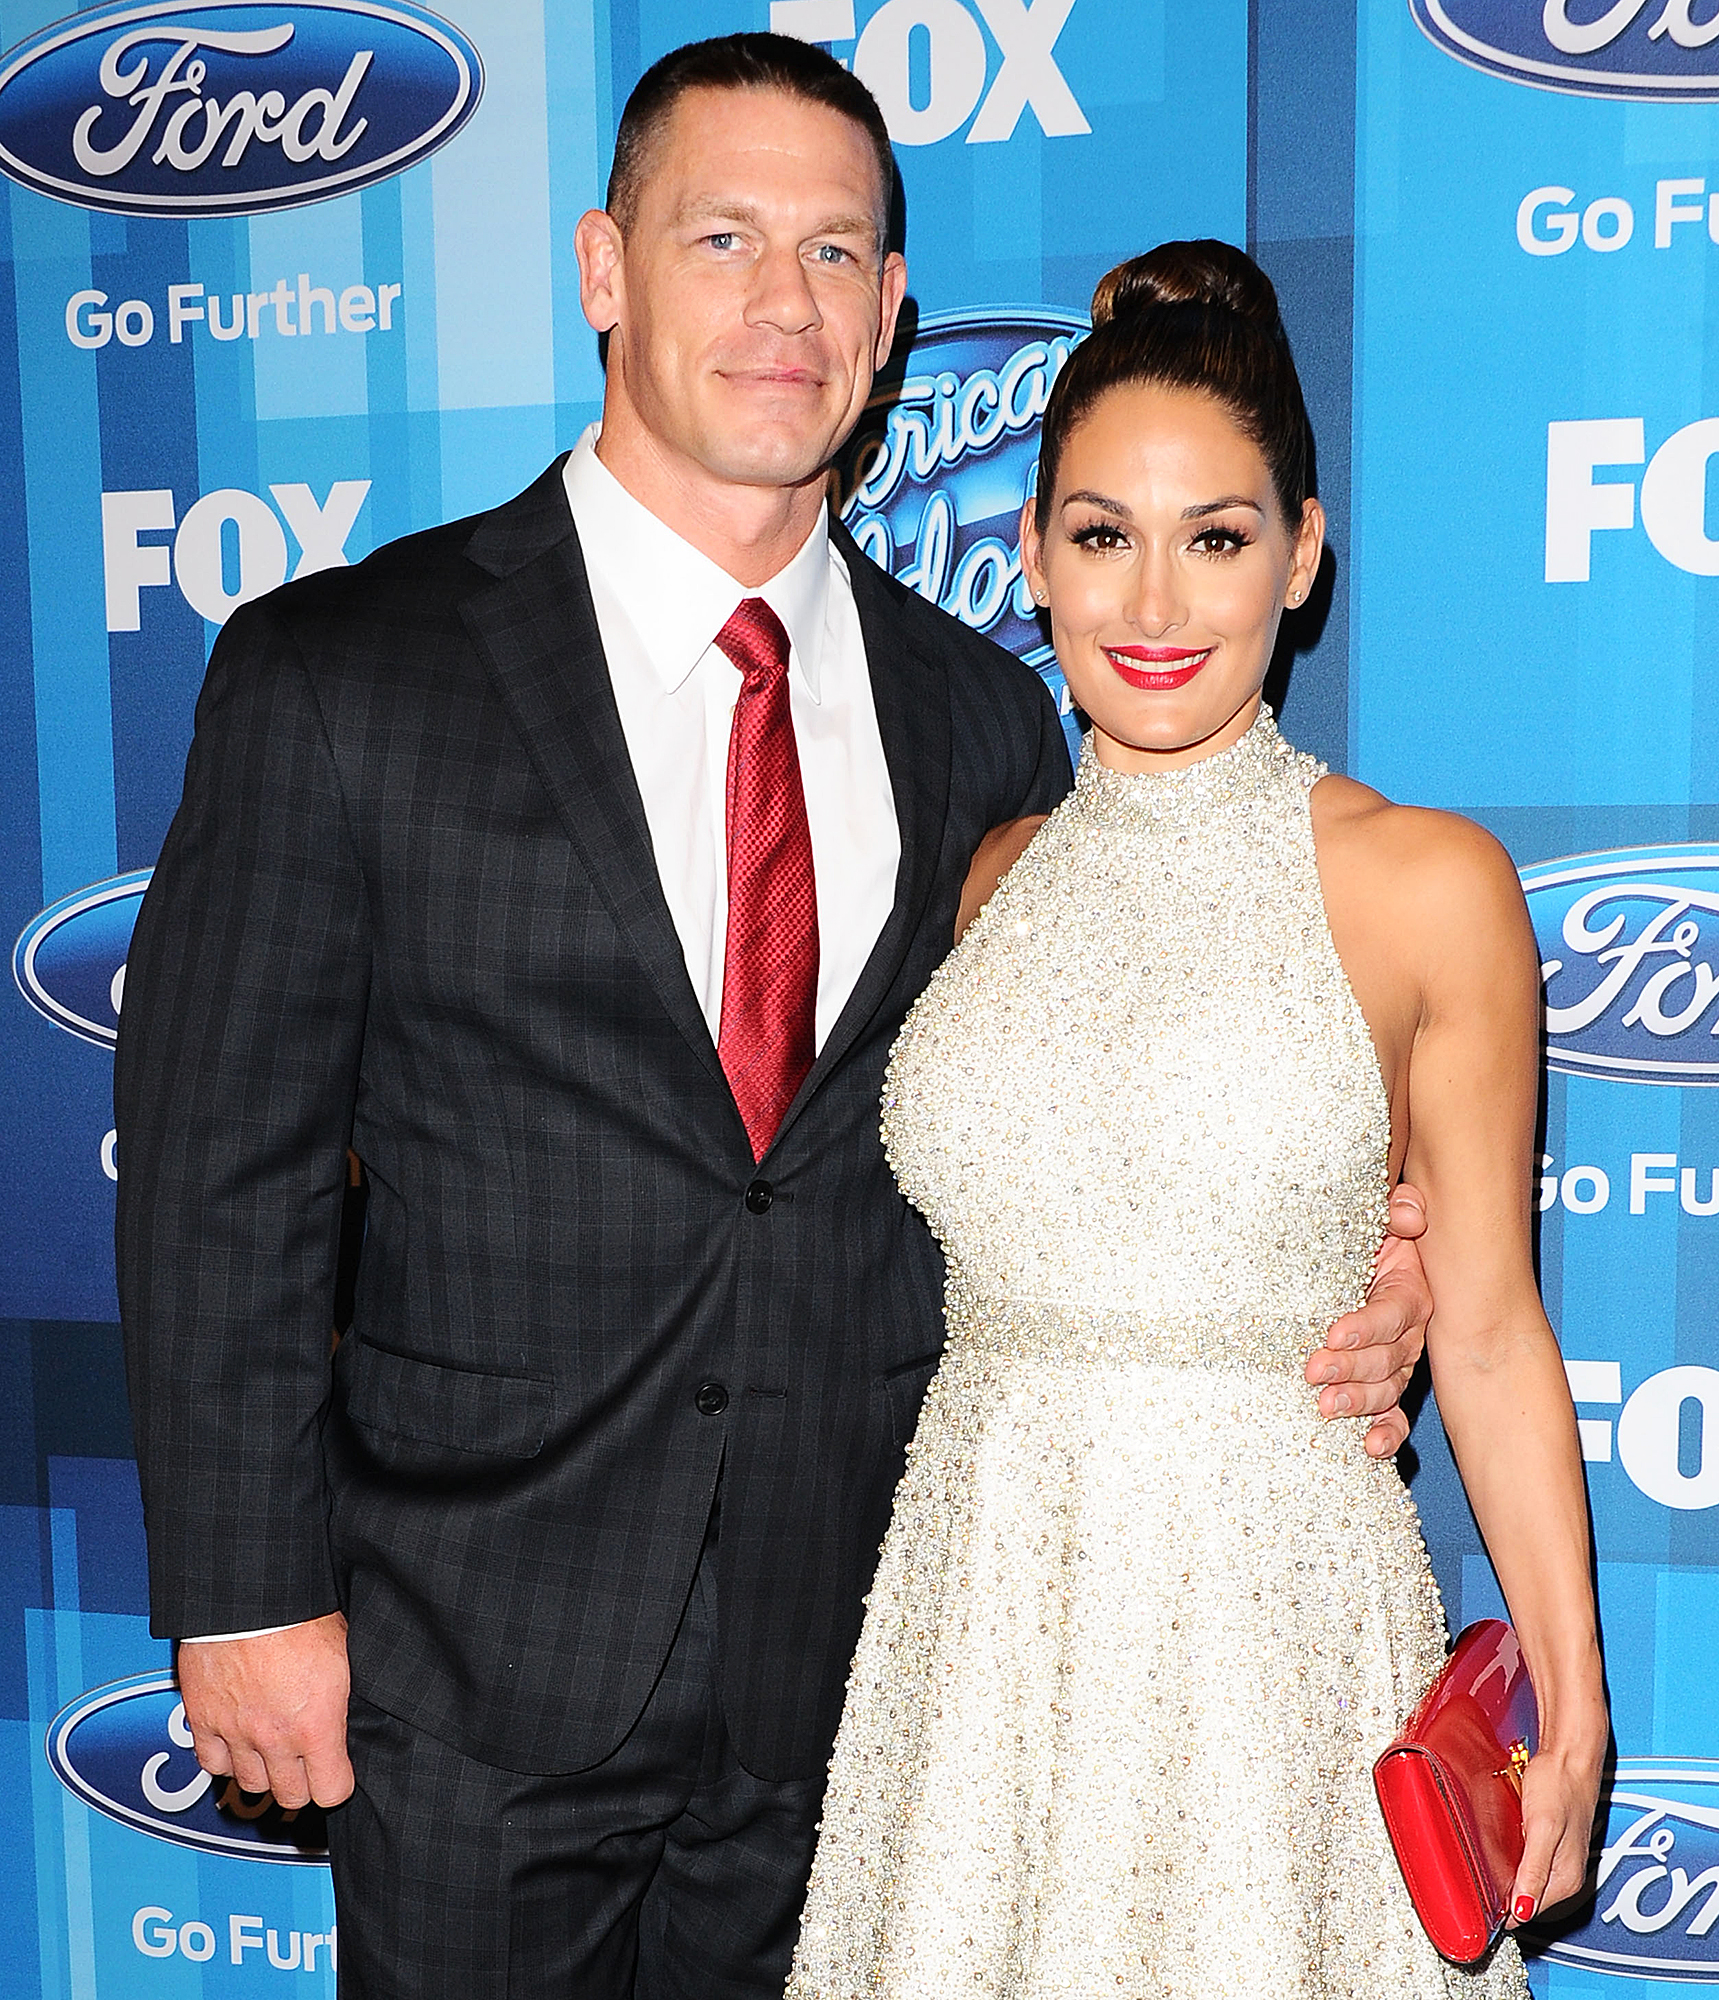 John Cena Nikki Bella Only Shared Bed for 30 Days in 6 months